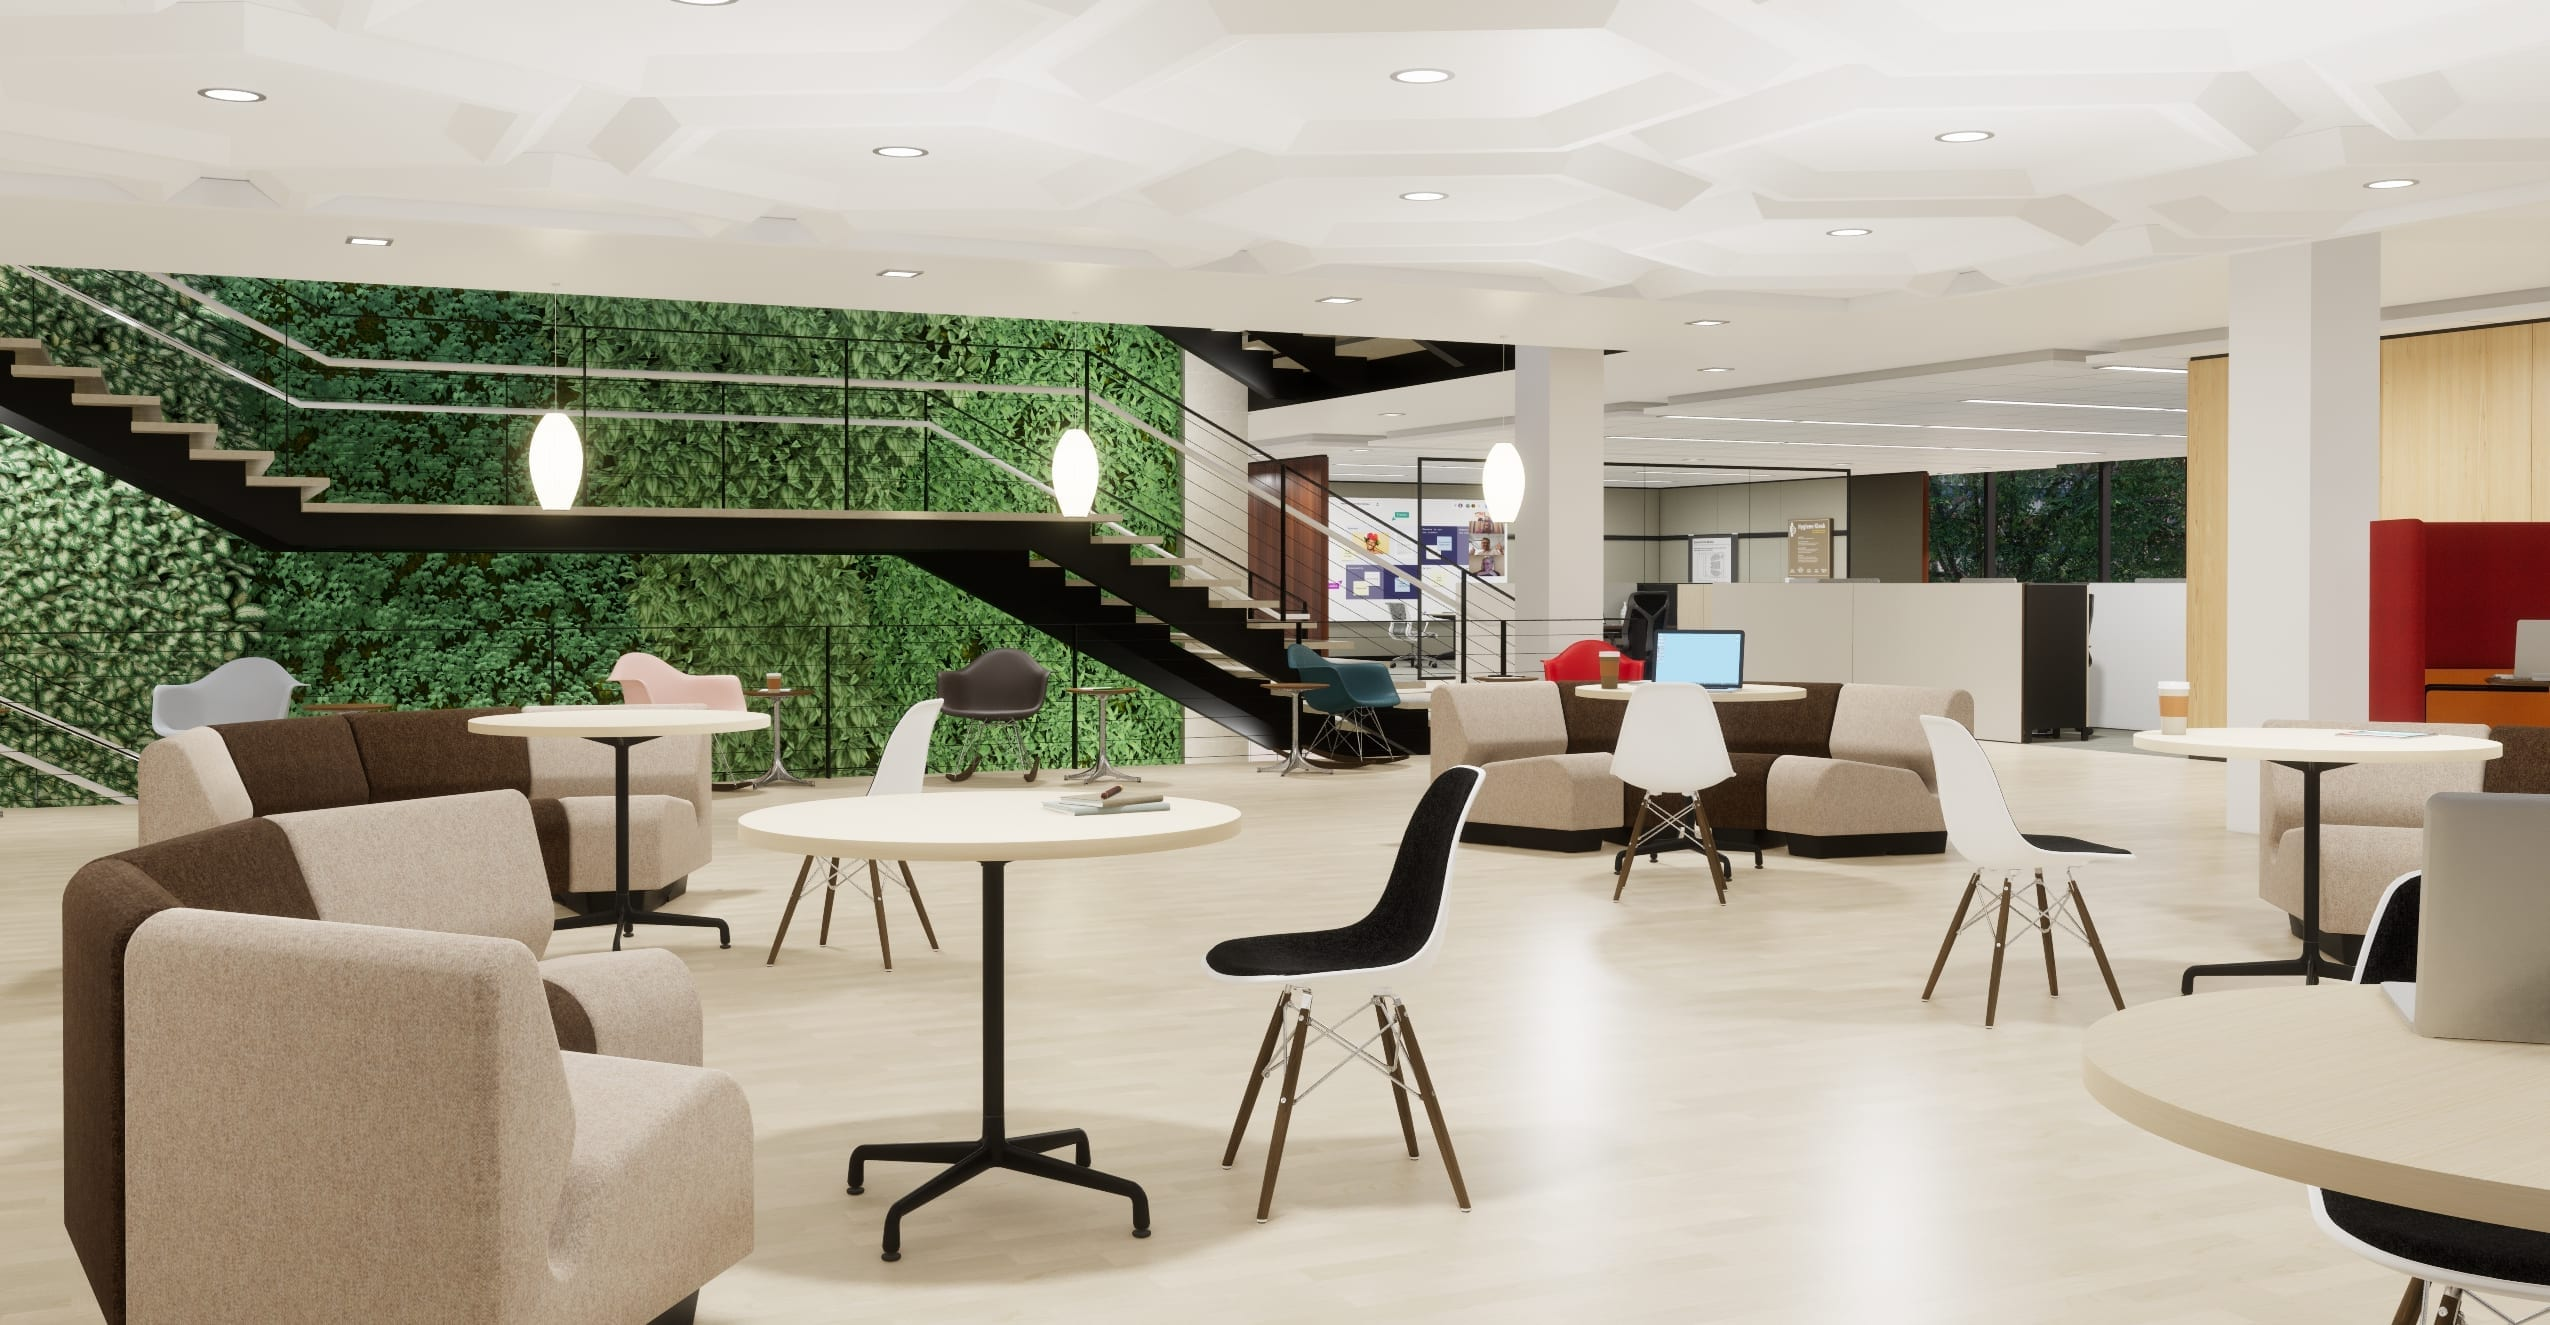 Sulaco: The Future of the Office from Herman Miller